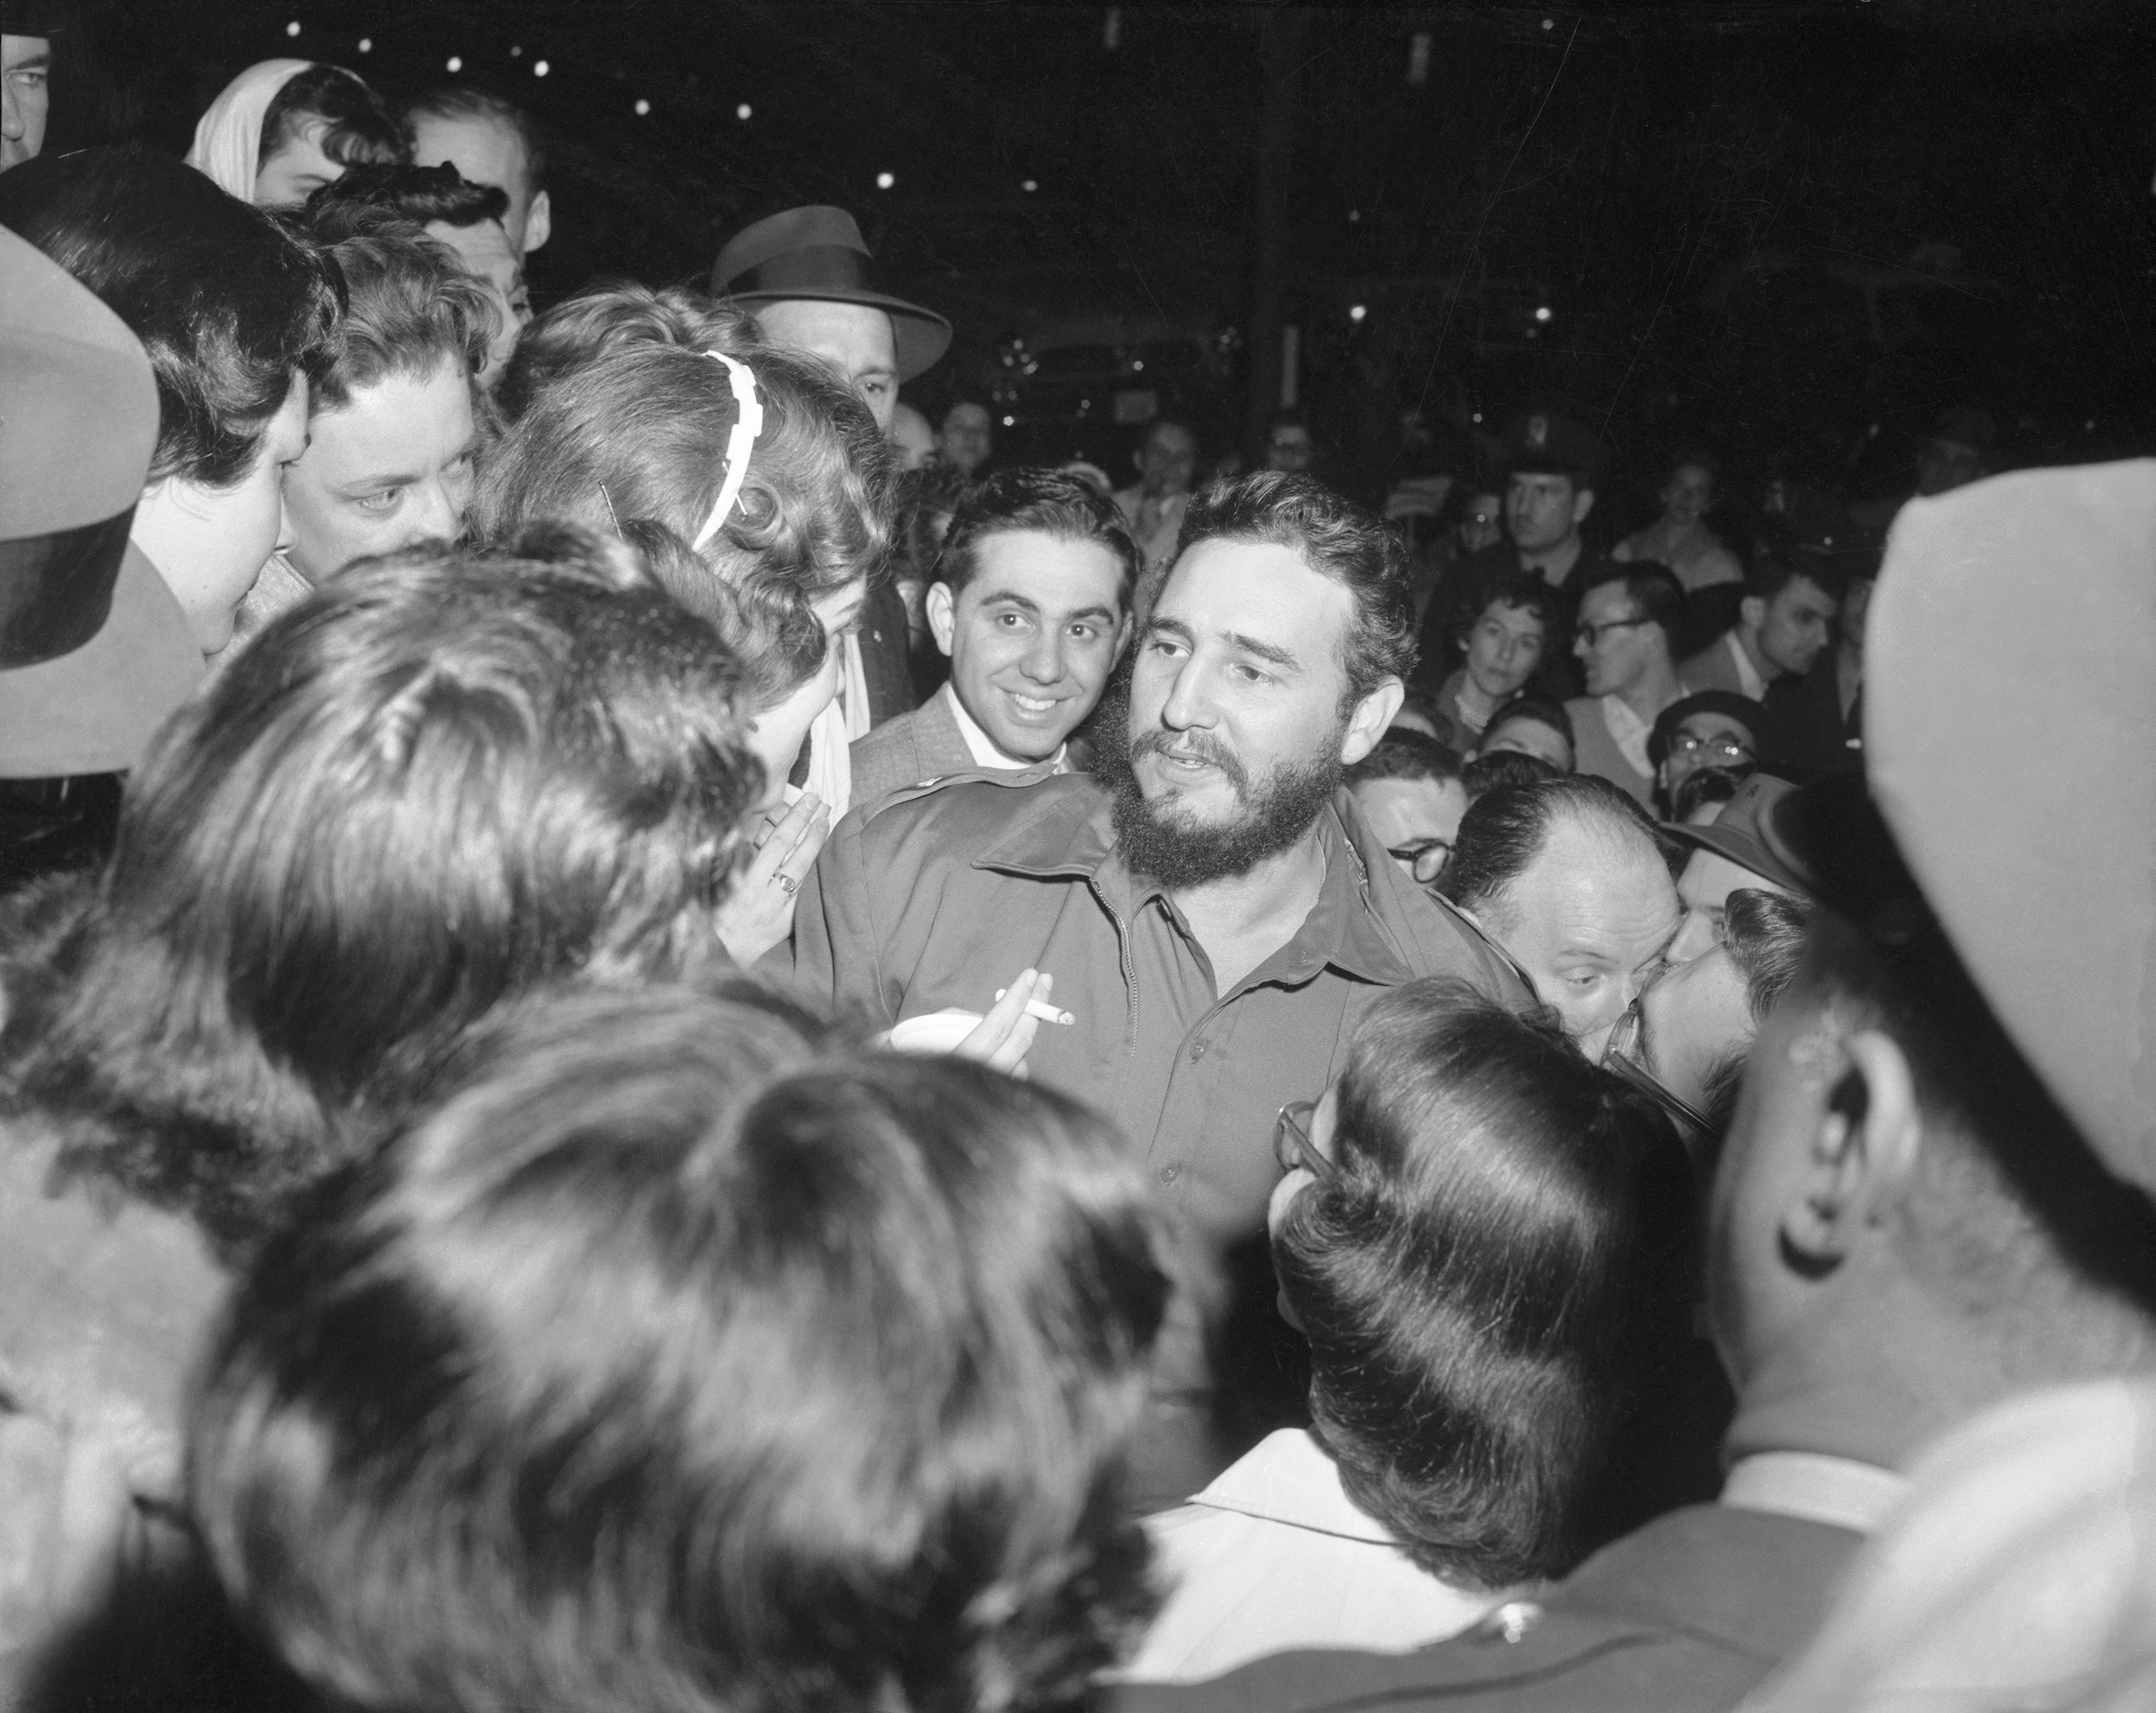 Cuban Prime Minister Fidel Castro greets admirers who waited for him across the street from the Cuban Embassy in Washington, D.C., in 1959.